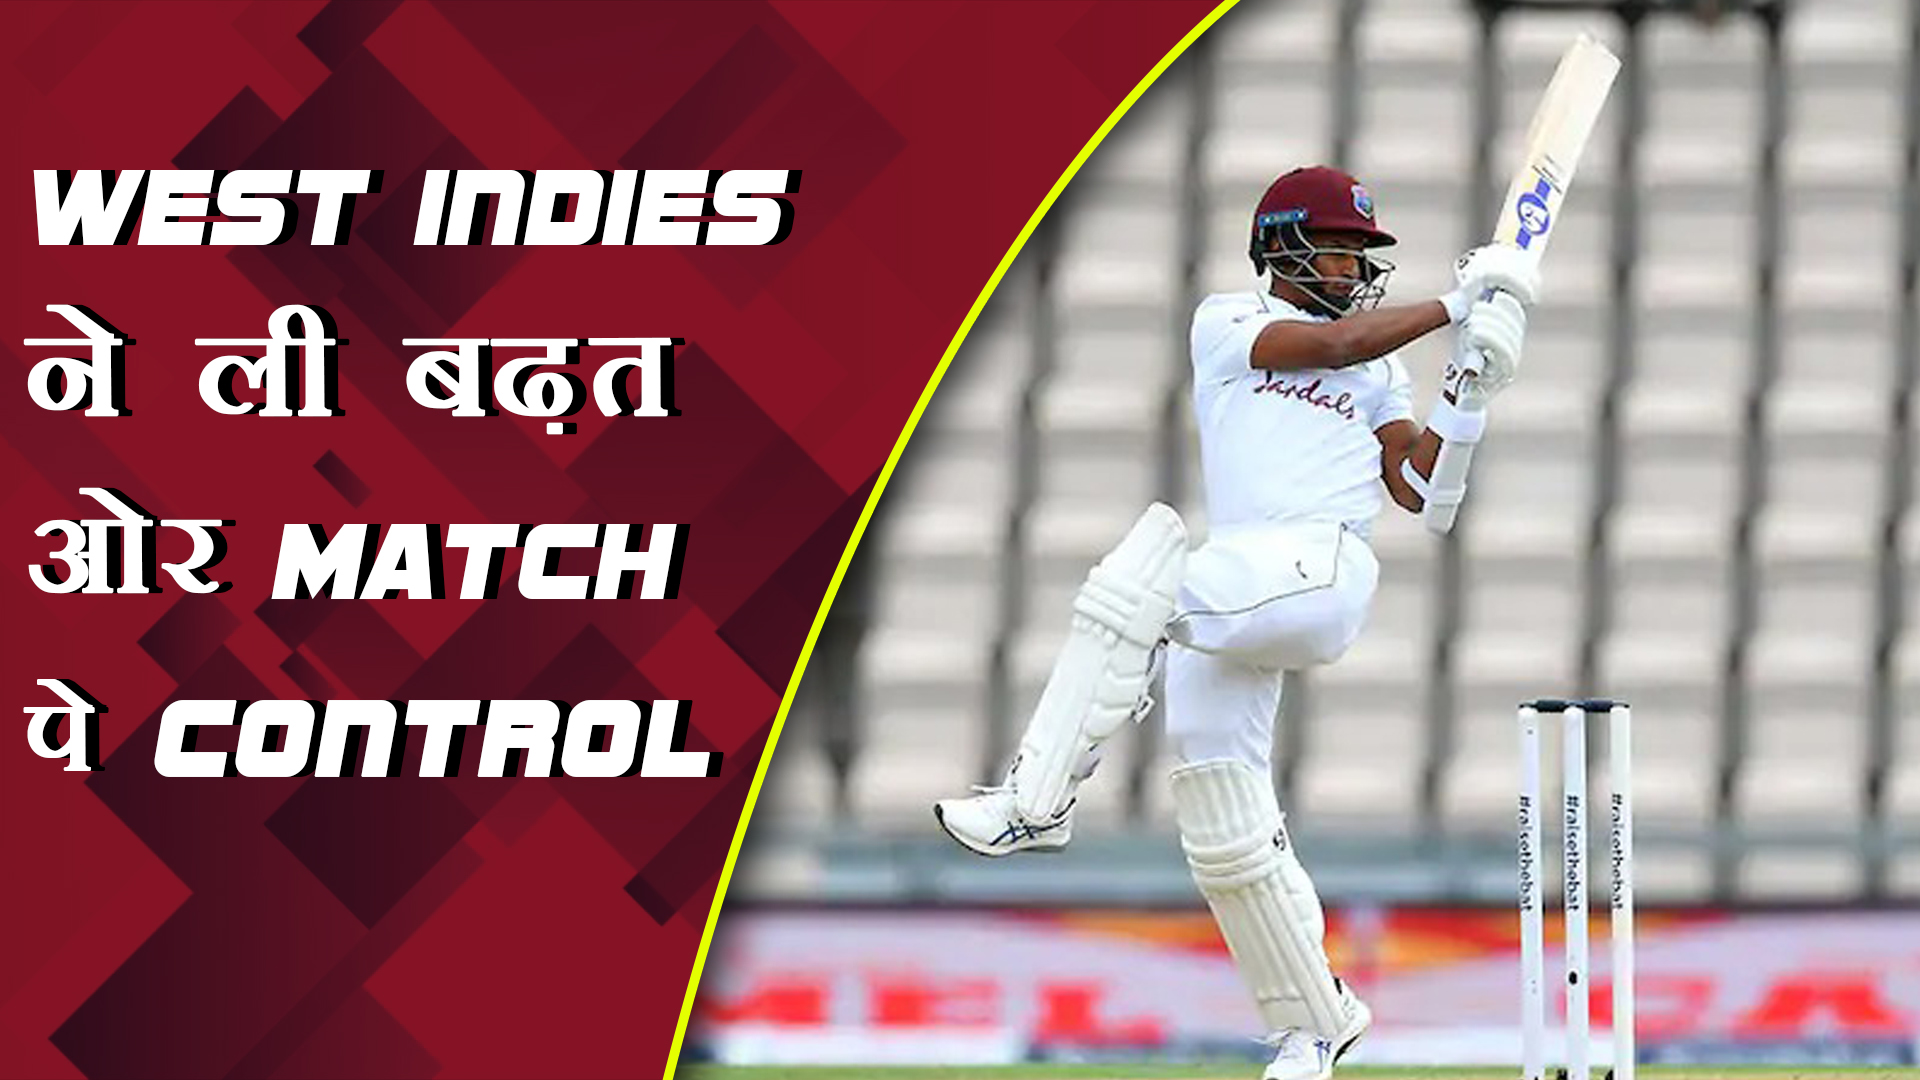 England vs West Indies 1st Test Day 3 analysis